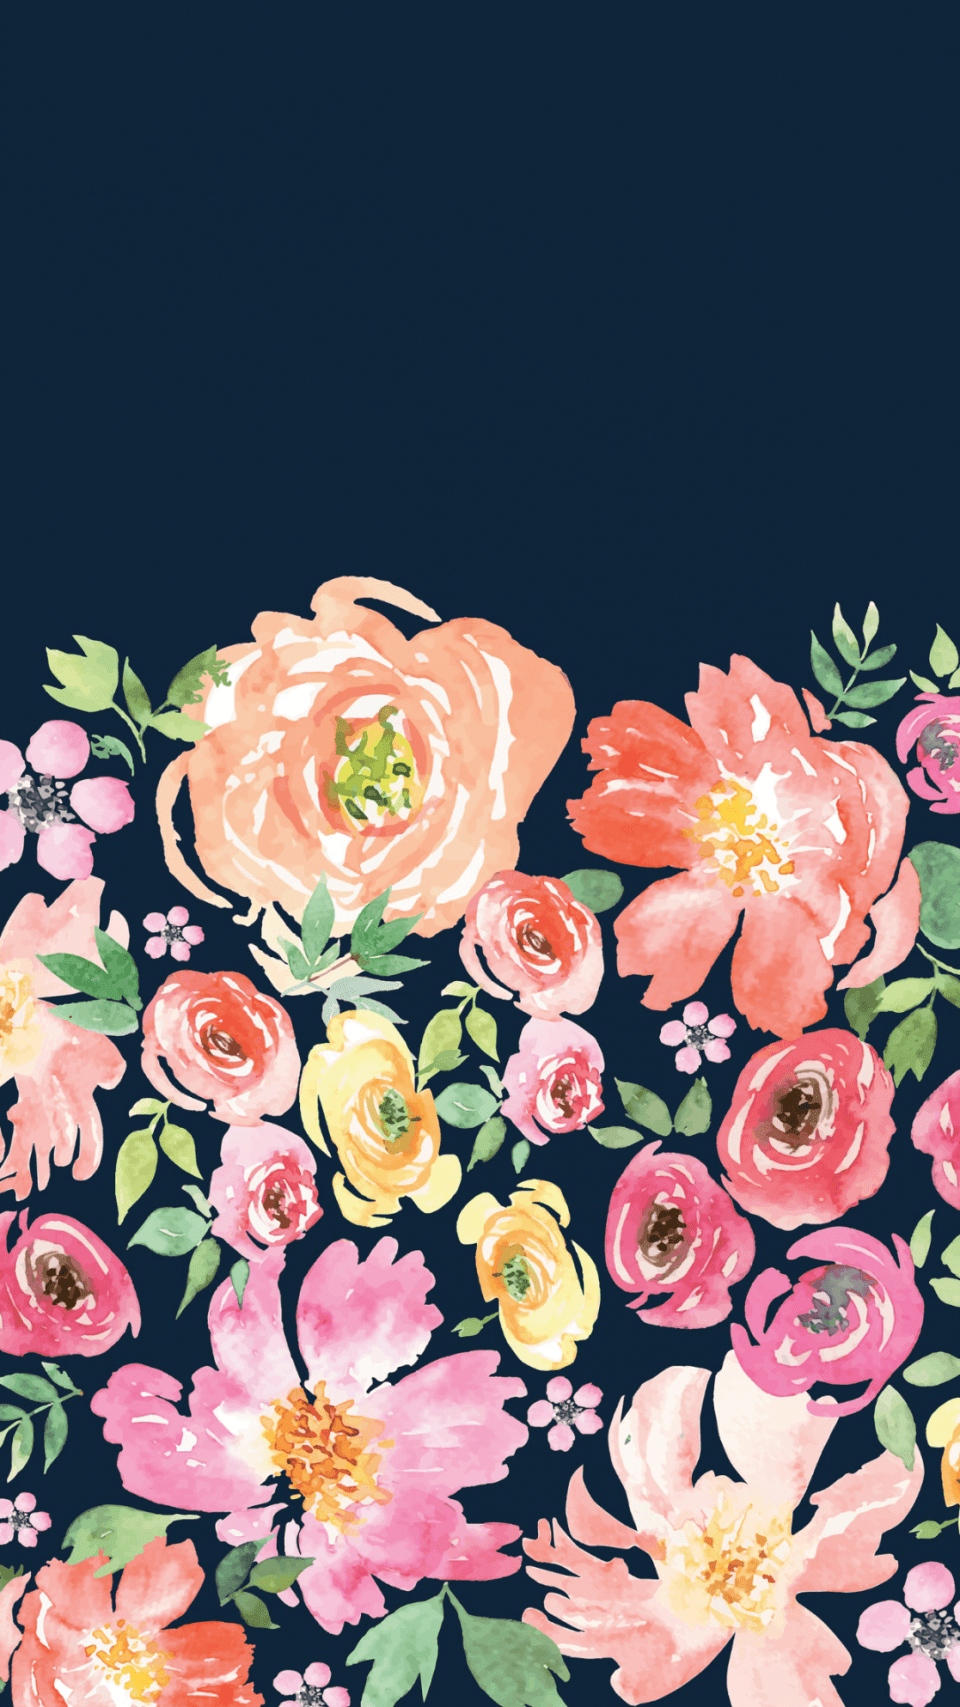 11 Ways Floral Iphone Wallpaper Can Improve Your Business Floral Iphone Wallpape Floral Iphone Background Floral Wallpaper Iphone Flower Background Wallpaper